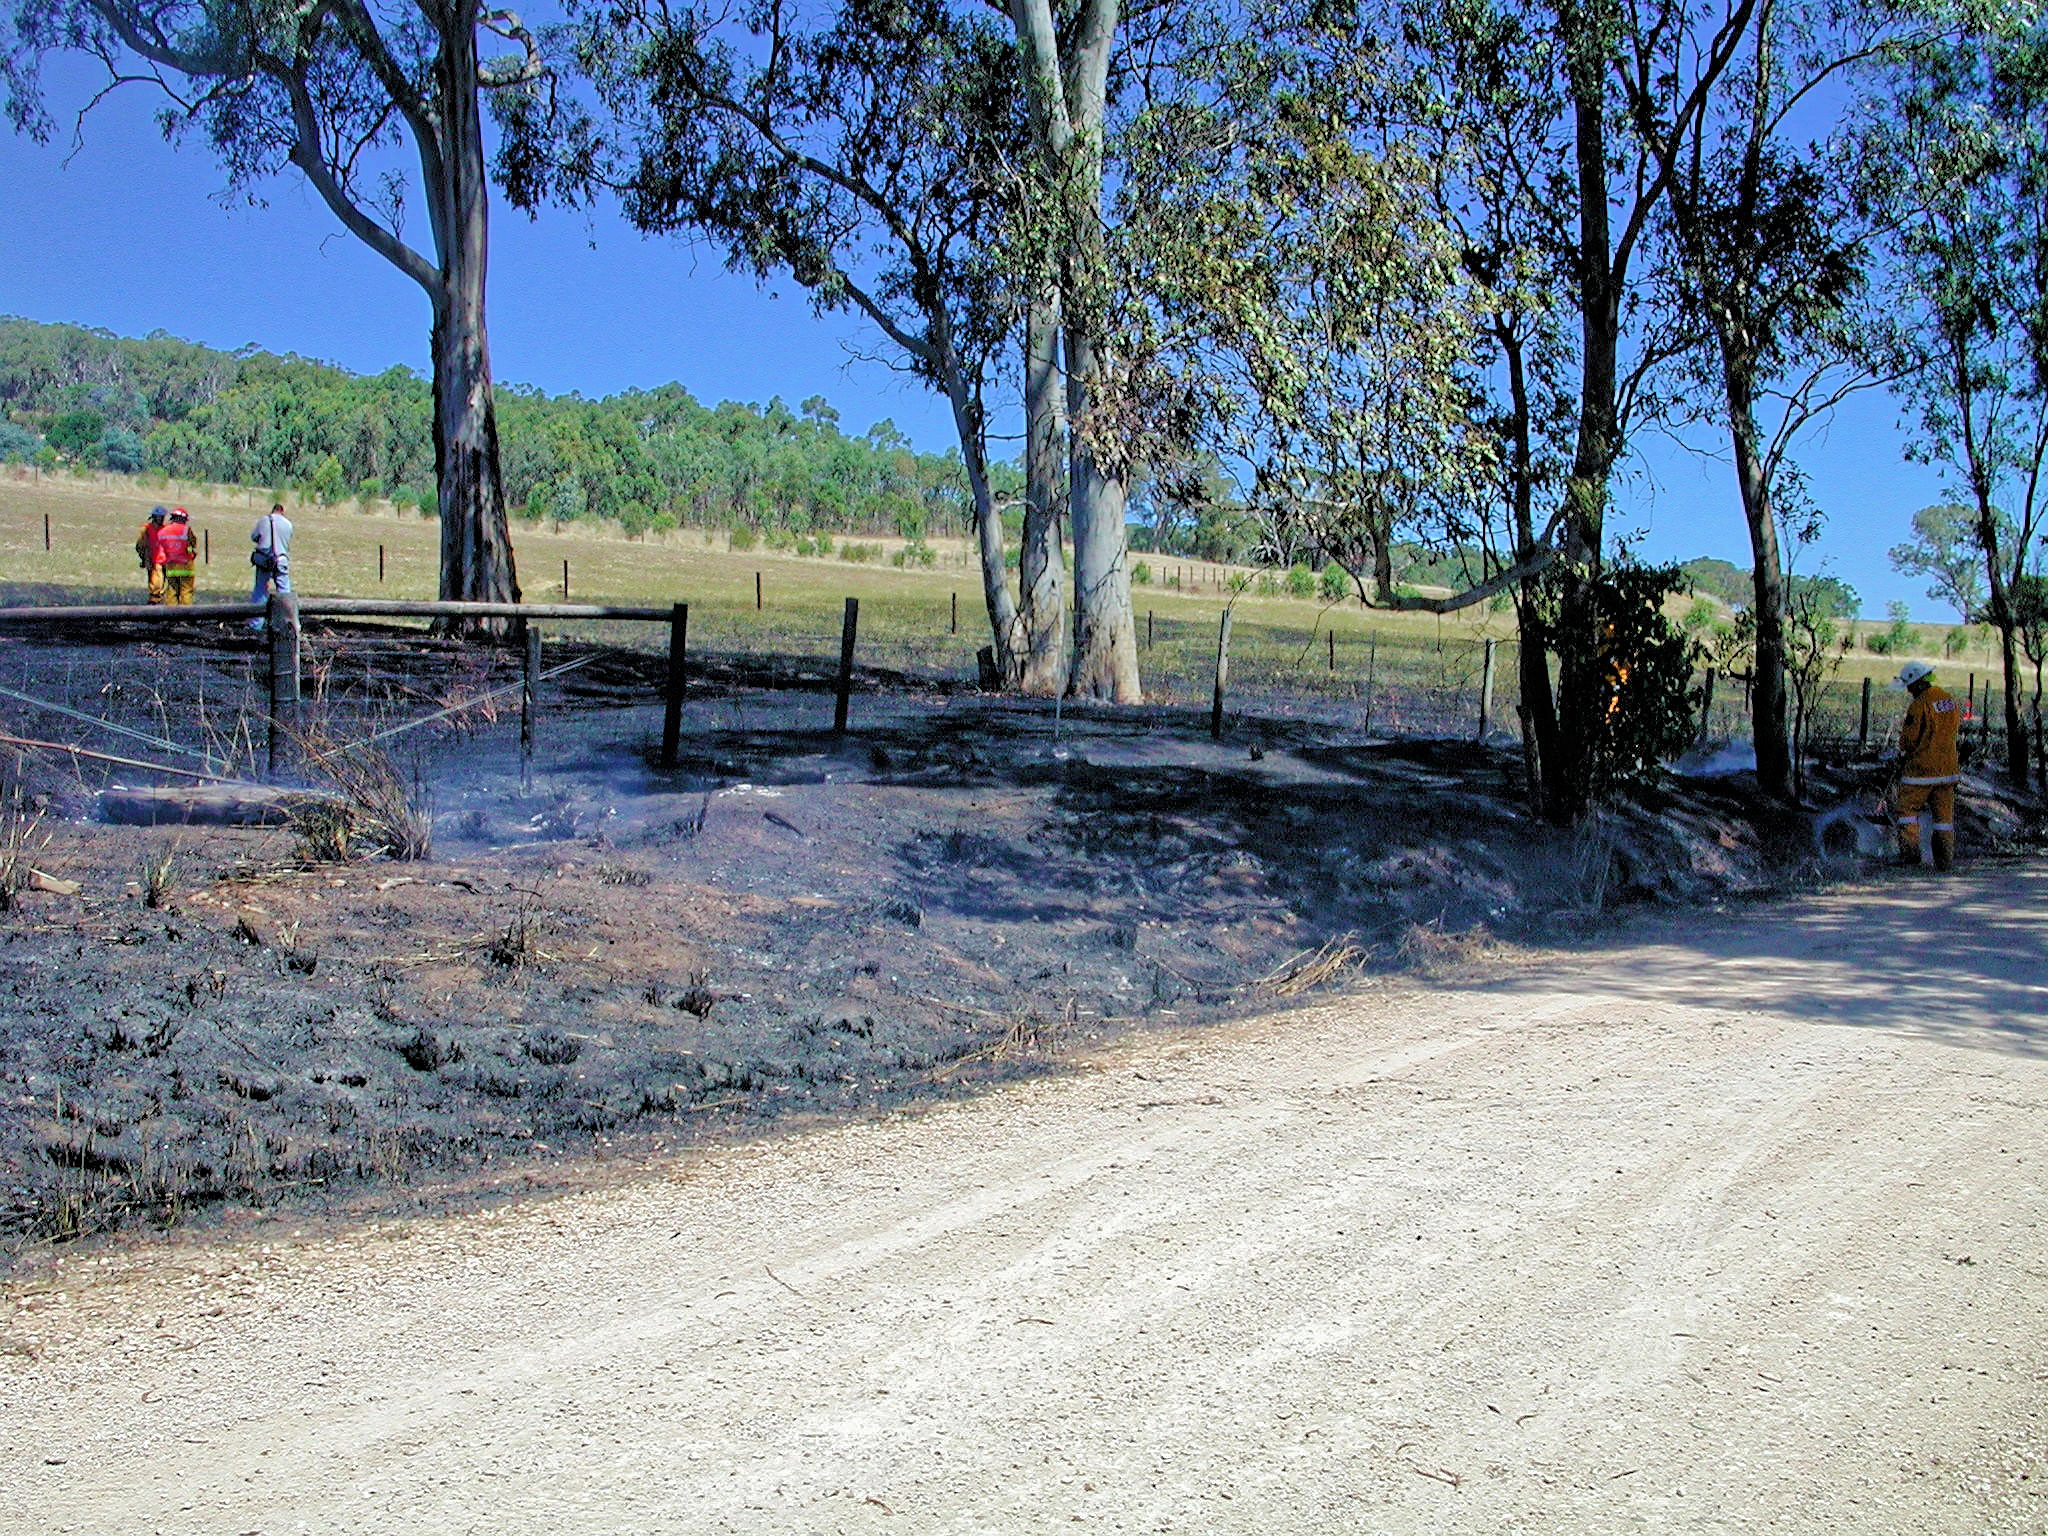 This should be bushfire-1538.jpeg.  Is it missing?